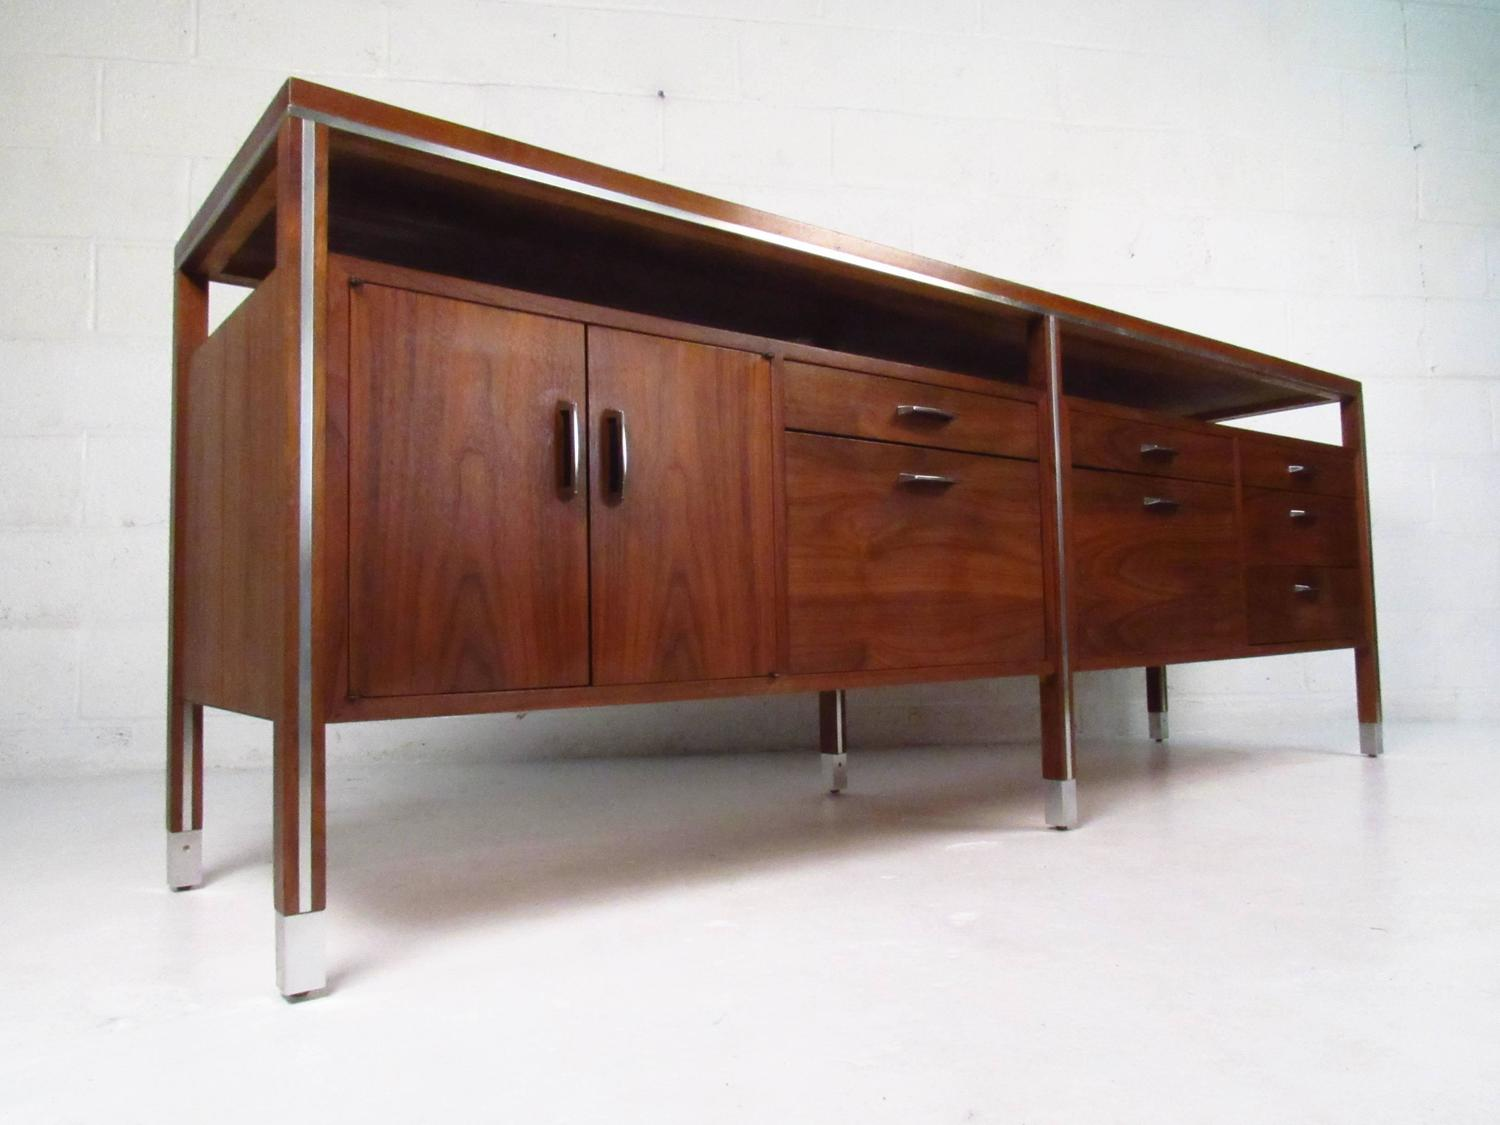 mid century modern office credenza by directional at 1stdibs. Black Bedroom Furniture Sets. Home Design Ideas